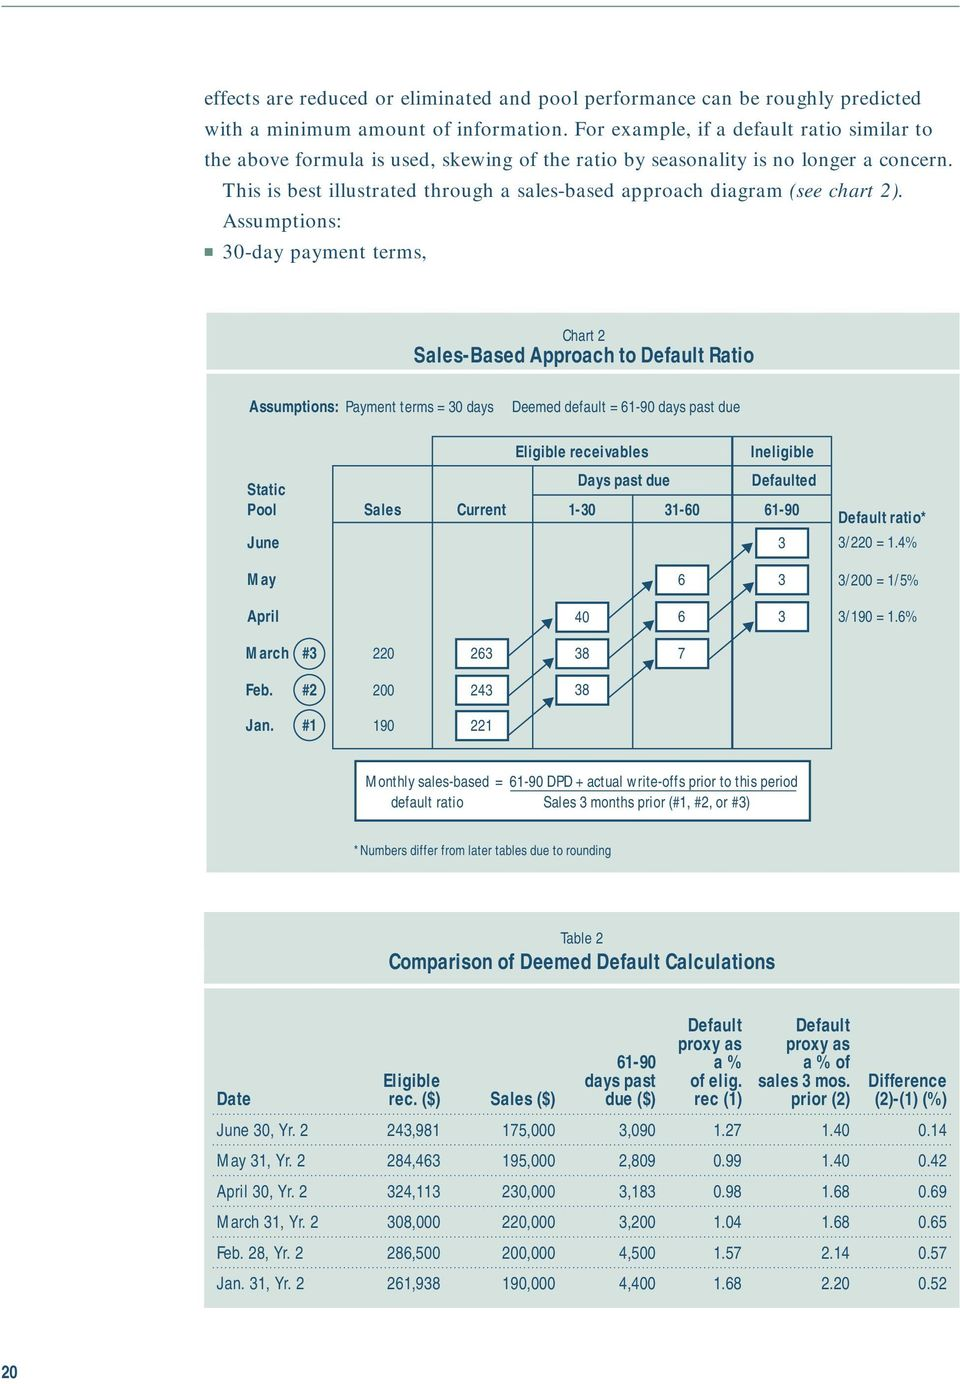 This is best illustrated through a sales-based approach diagram (see chart 2).